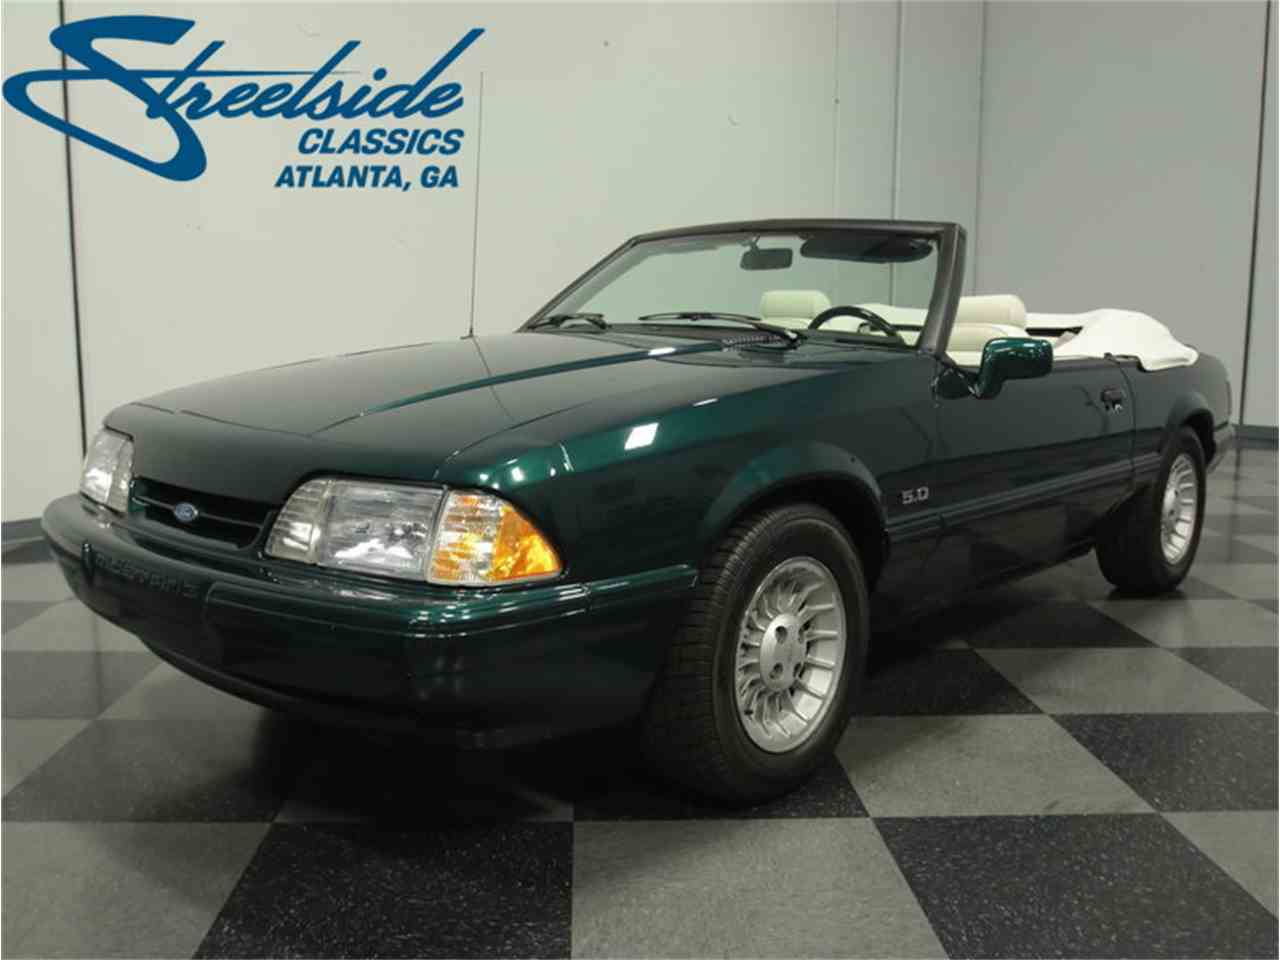 Large Picture of '90 Ford Mustang LX 7-UP Edition located in Georgia - $12,995.00 Offered by Streetside Classics - Atlanta - IRSA